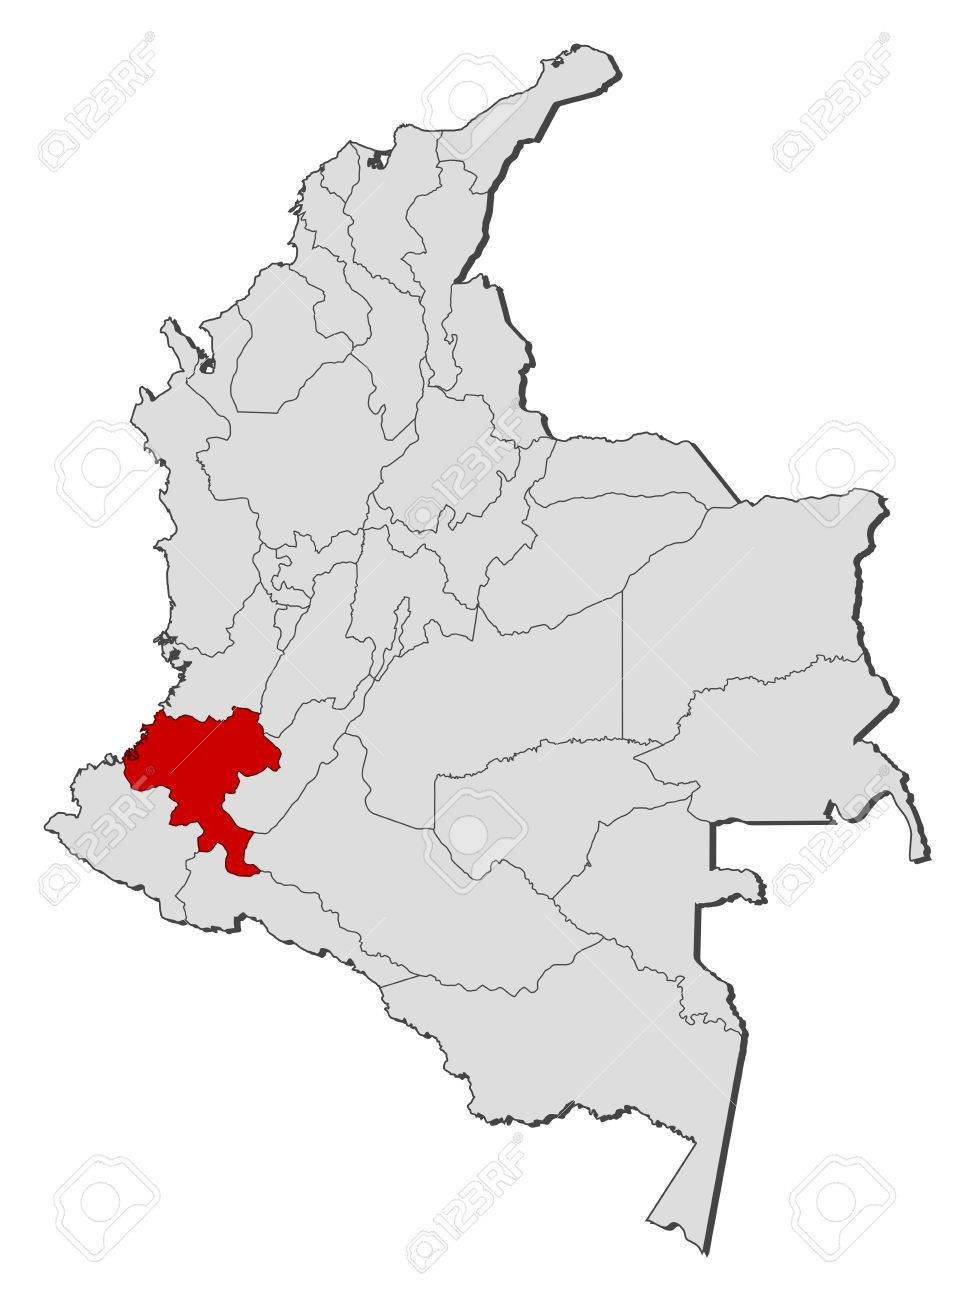 Map of Colombia with the provinces, Cauca is highlighted. Cau Ca Map on cor ca map, phuoc vinh map, ca mau map, con ca map, bat ca map, quang ngai province map, day ca map,